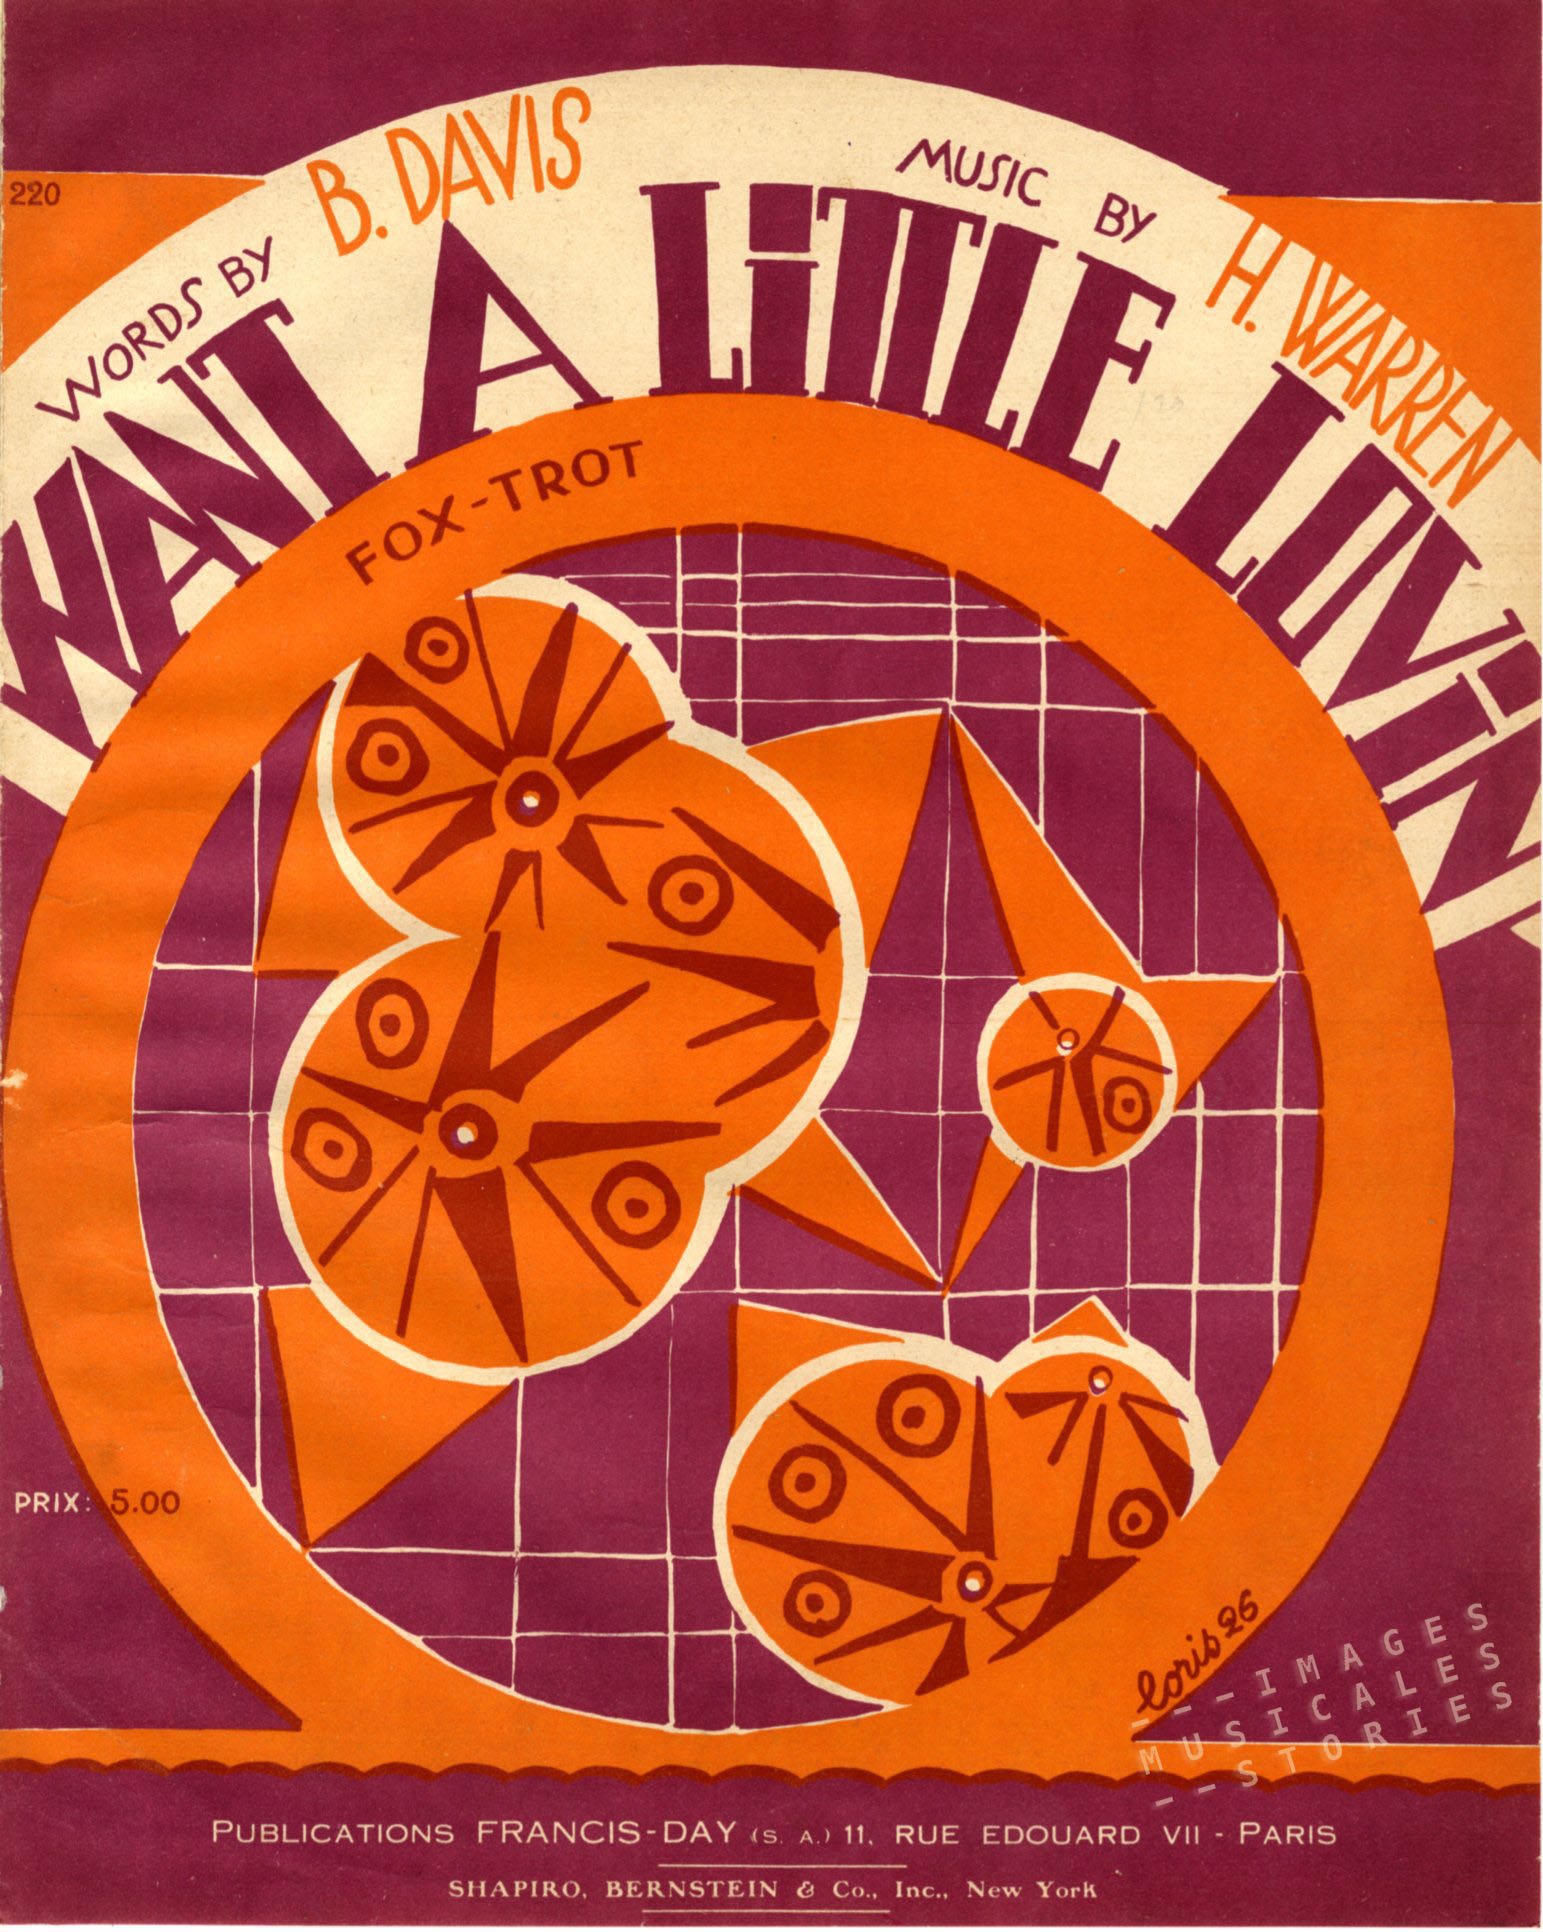 Sheet music cover designed by Fabien Loris. (1925)